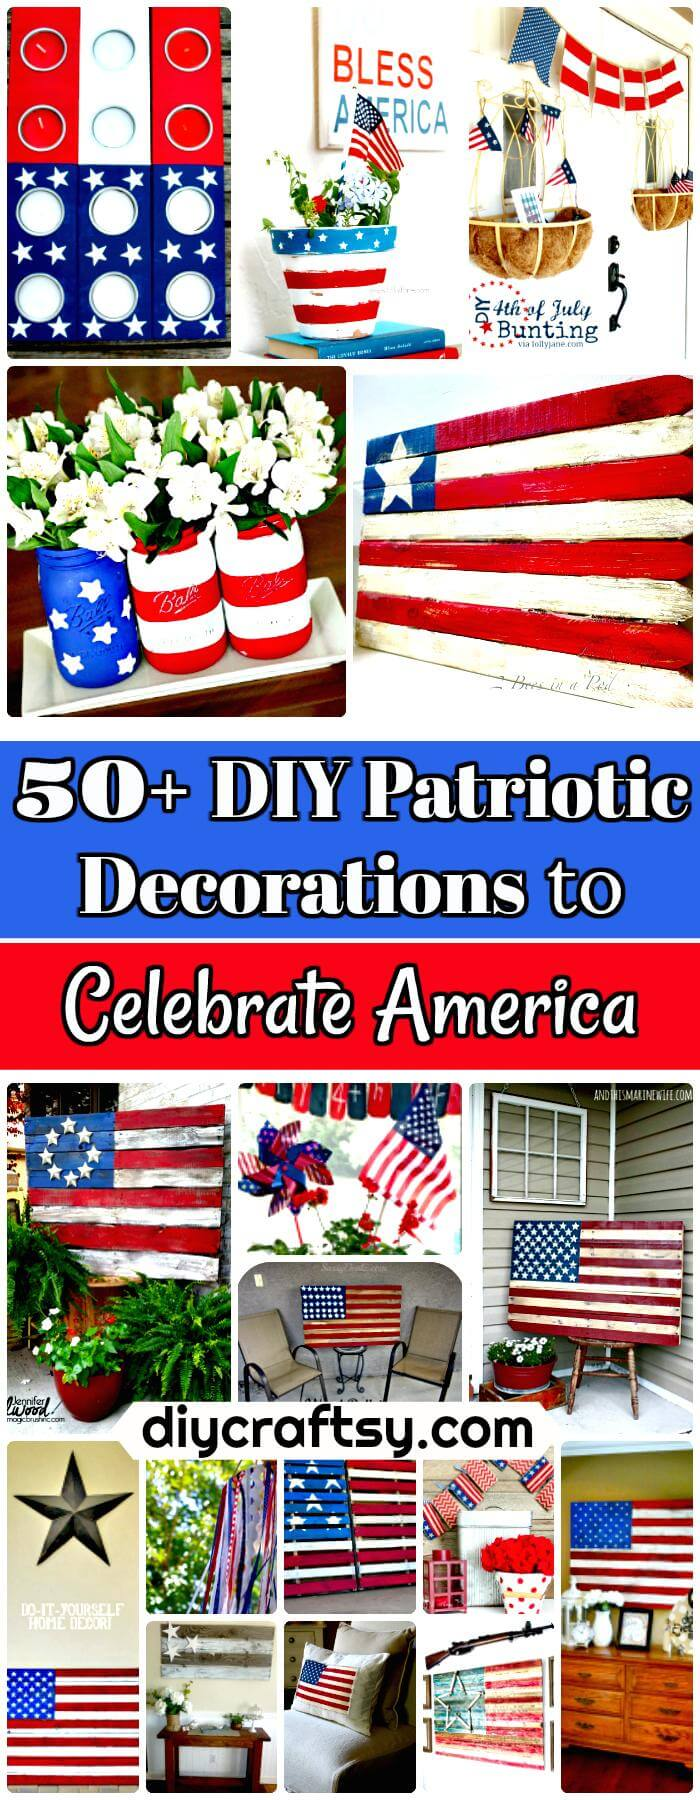 50 Diy Patriotic Decorations To Celebrate America Page 3 Of 10 Diy Amp Crafts